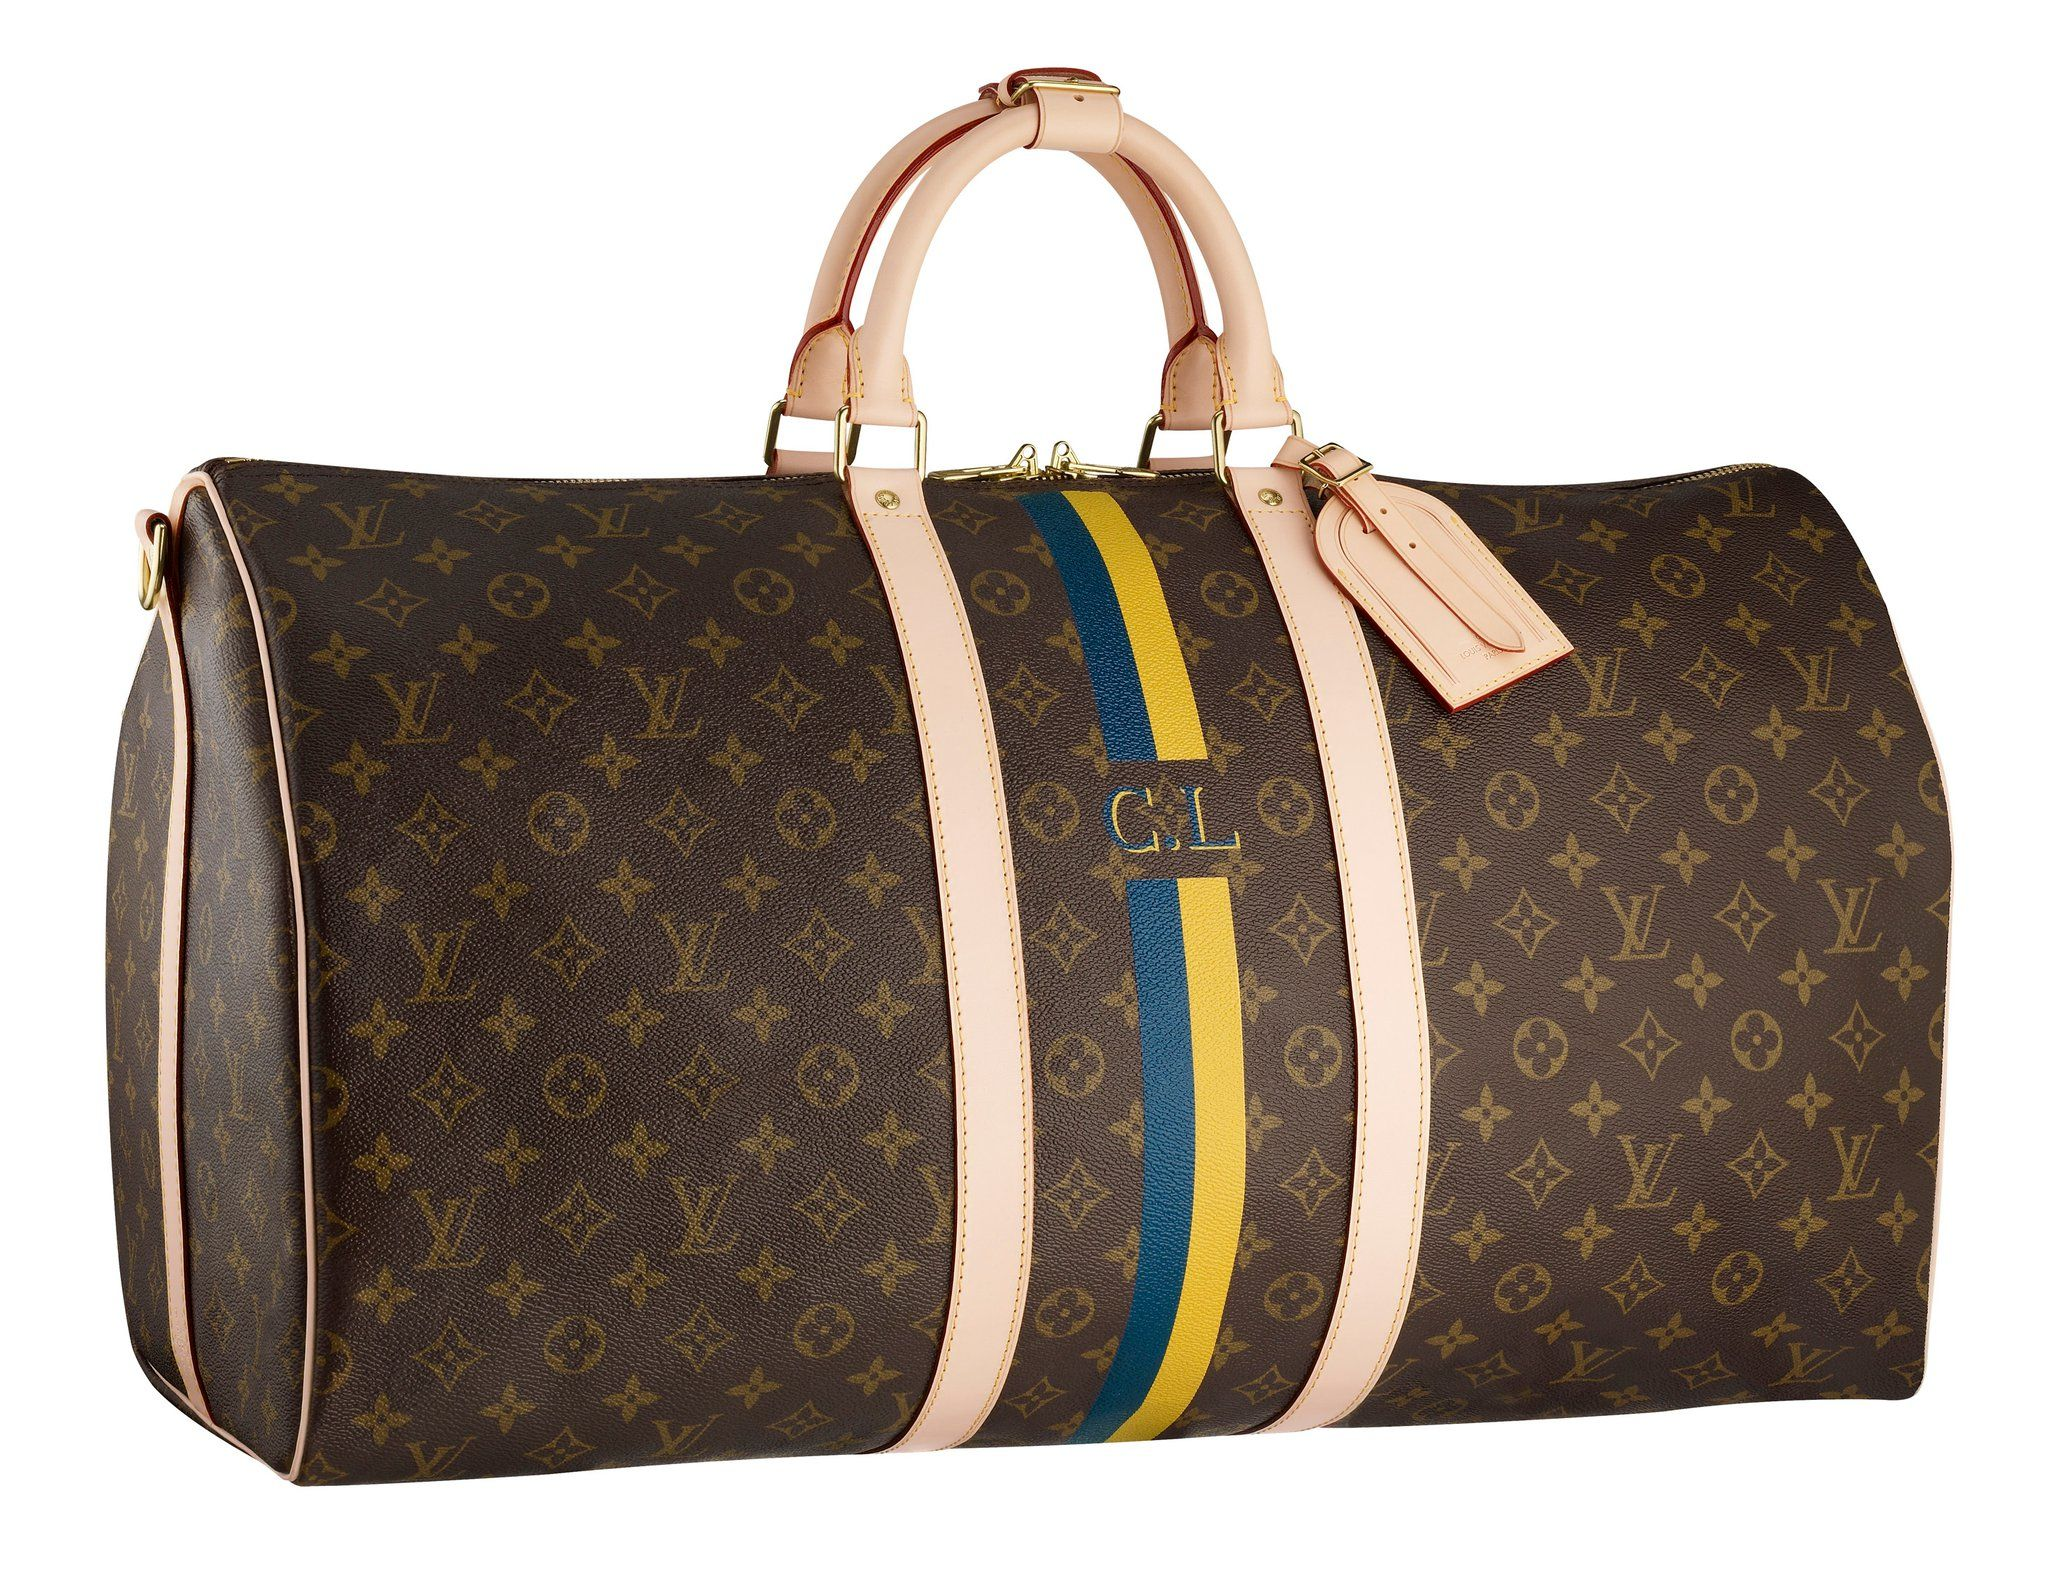 #Louis #Vuitton #Handbags Outlet Big Discount Save 50% For New York Fashion LV Handbags Hot Sale 2016 Cheapest Price! Pls Repin It And Press Picture Link Get It Immediately! Thx.